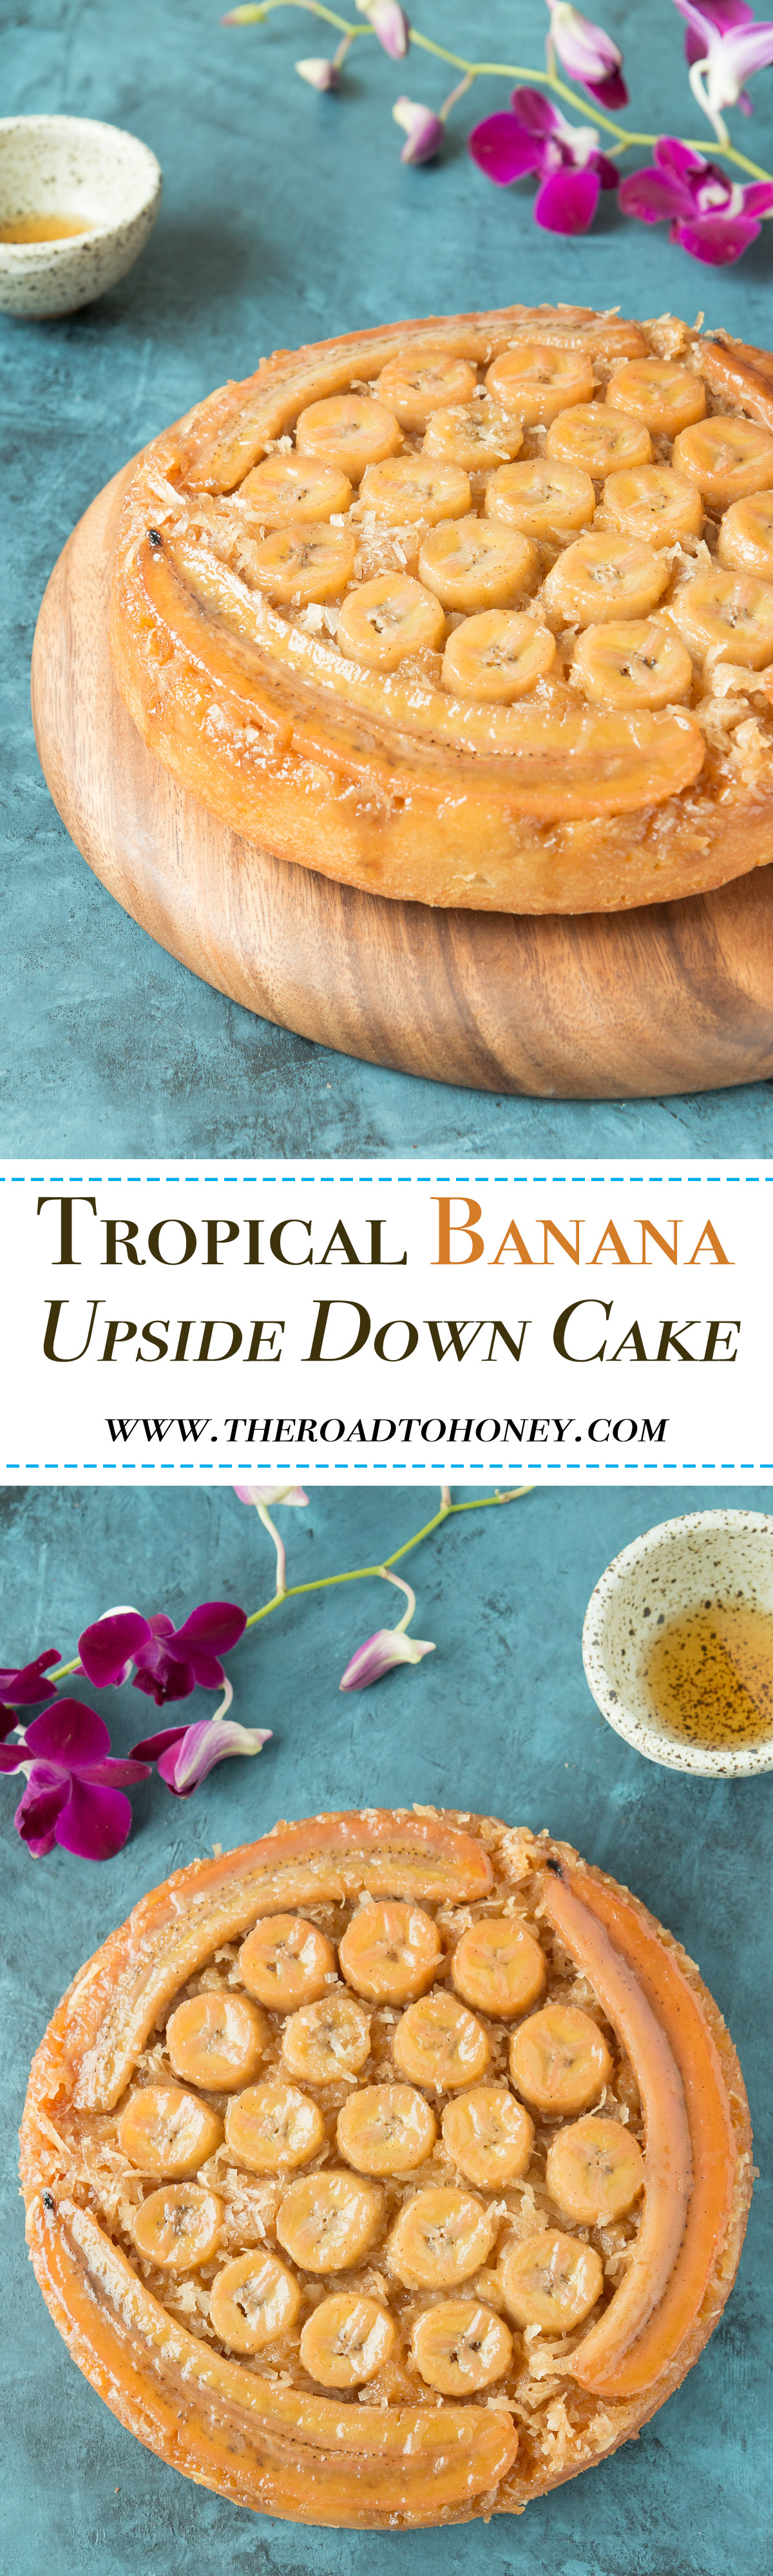 Tropical Banana Upside Down Cake | THE ROAD TO HONEY